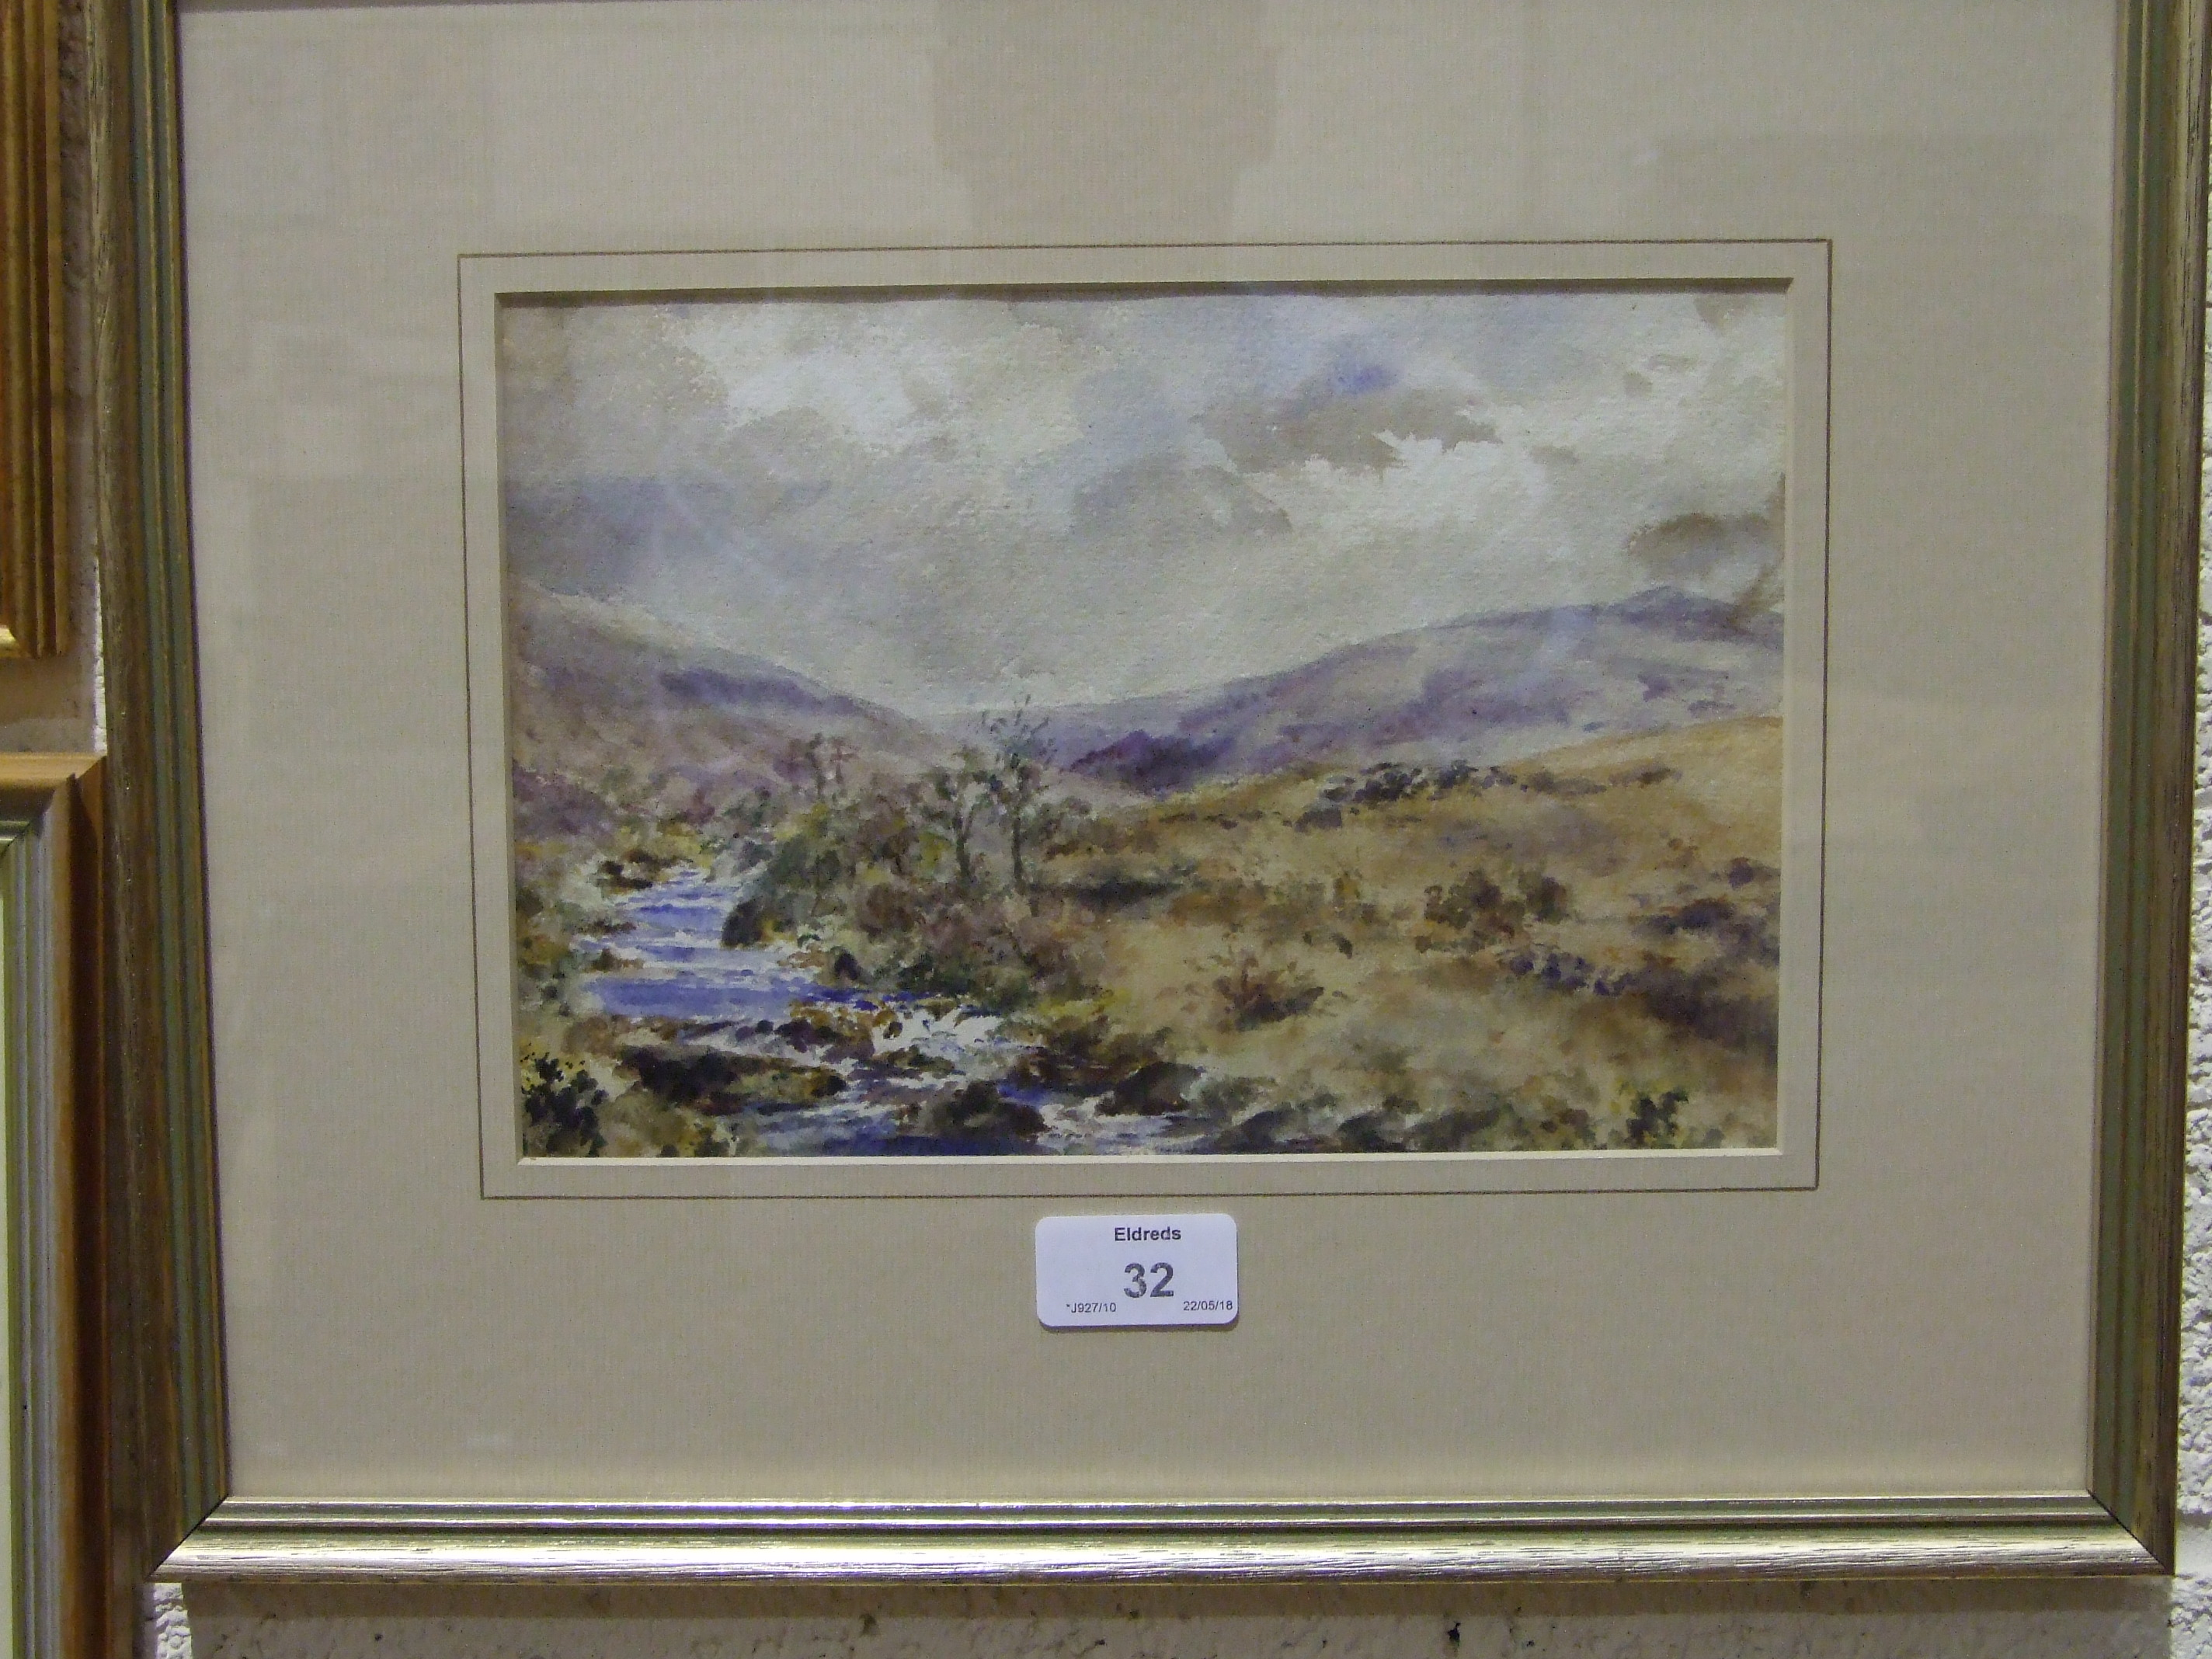 R W Holman TAVY-CLEAVE, DARTMOOR Signed watercolour, 20 x 30cm and another by A Jukes-Browne, - Image 2 of 3